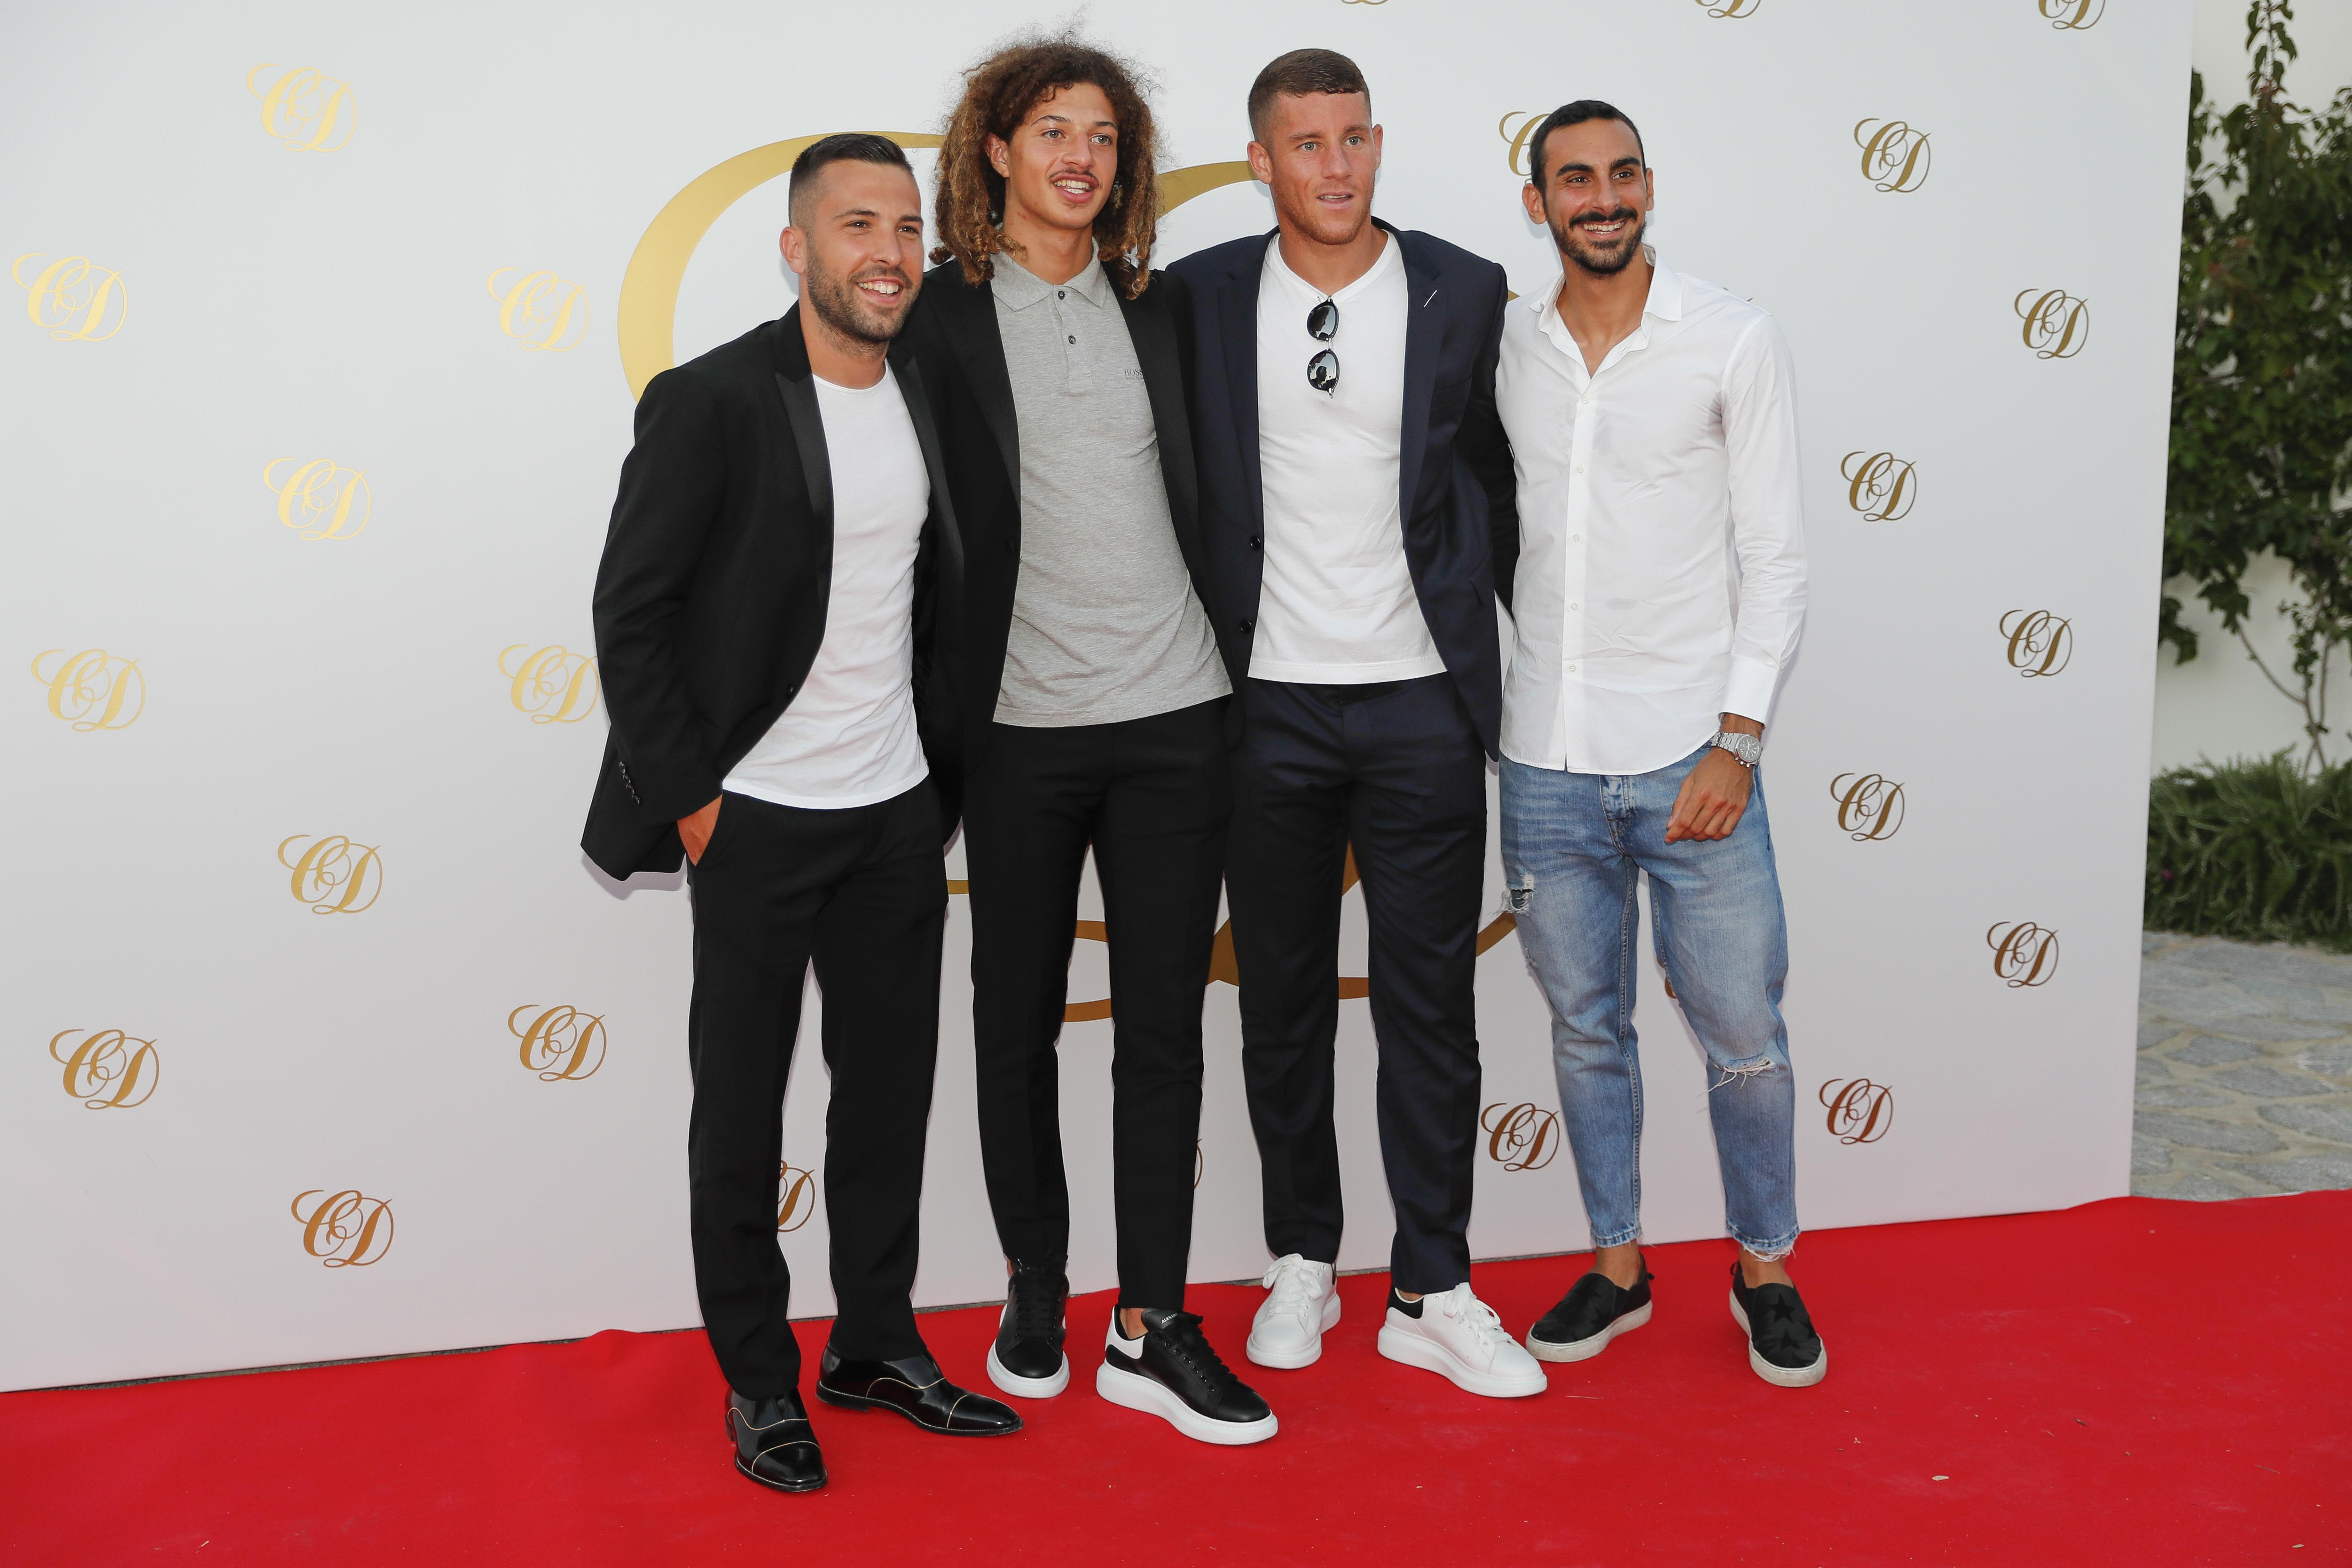 Barcelona star Jordi Alba and Chelsea players Ethan Ampadu, Ross Barkley and Davide Zappacosta pose for a picture at the Ibiza bash